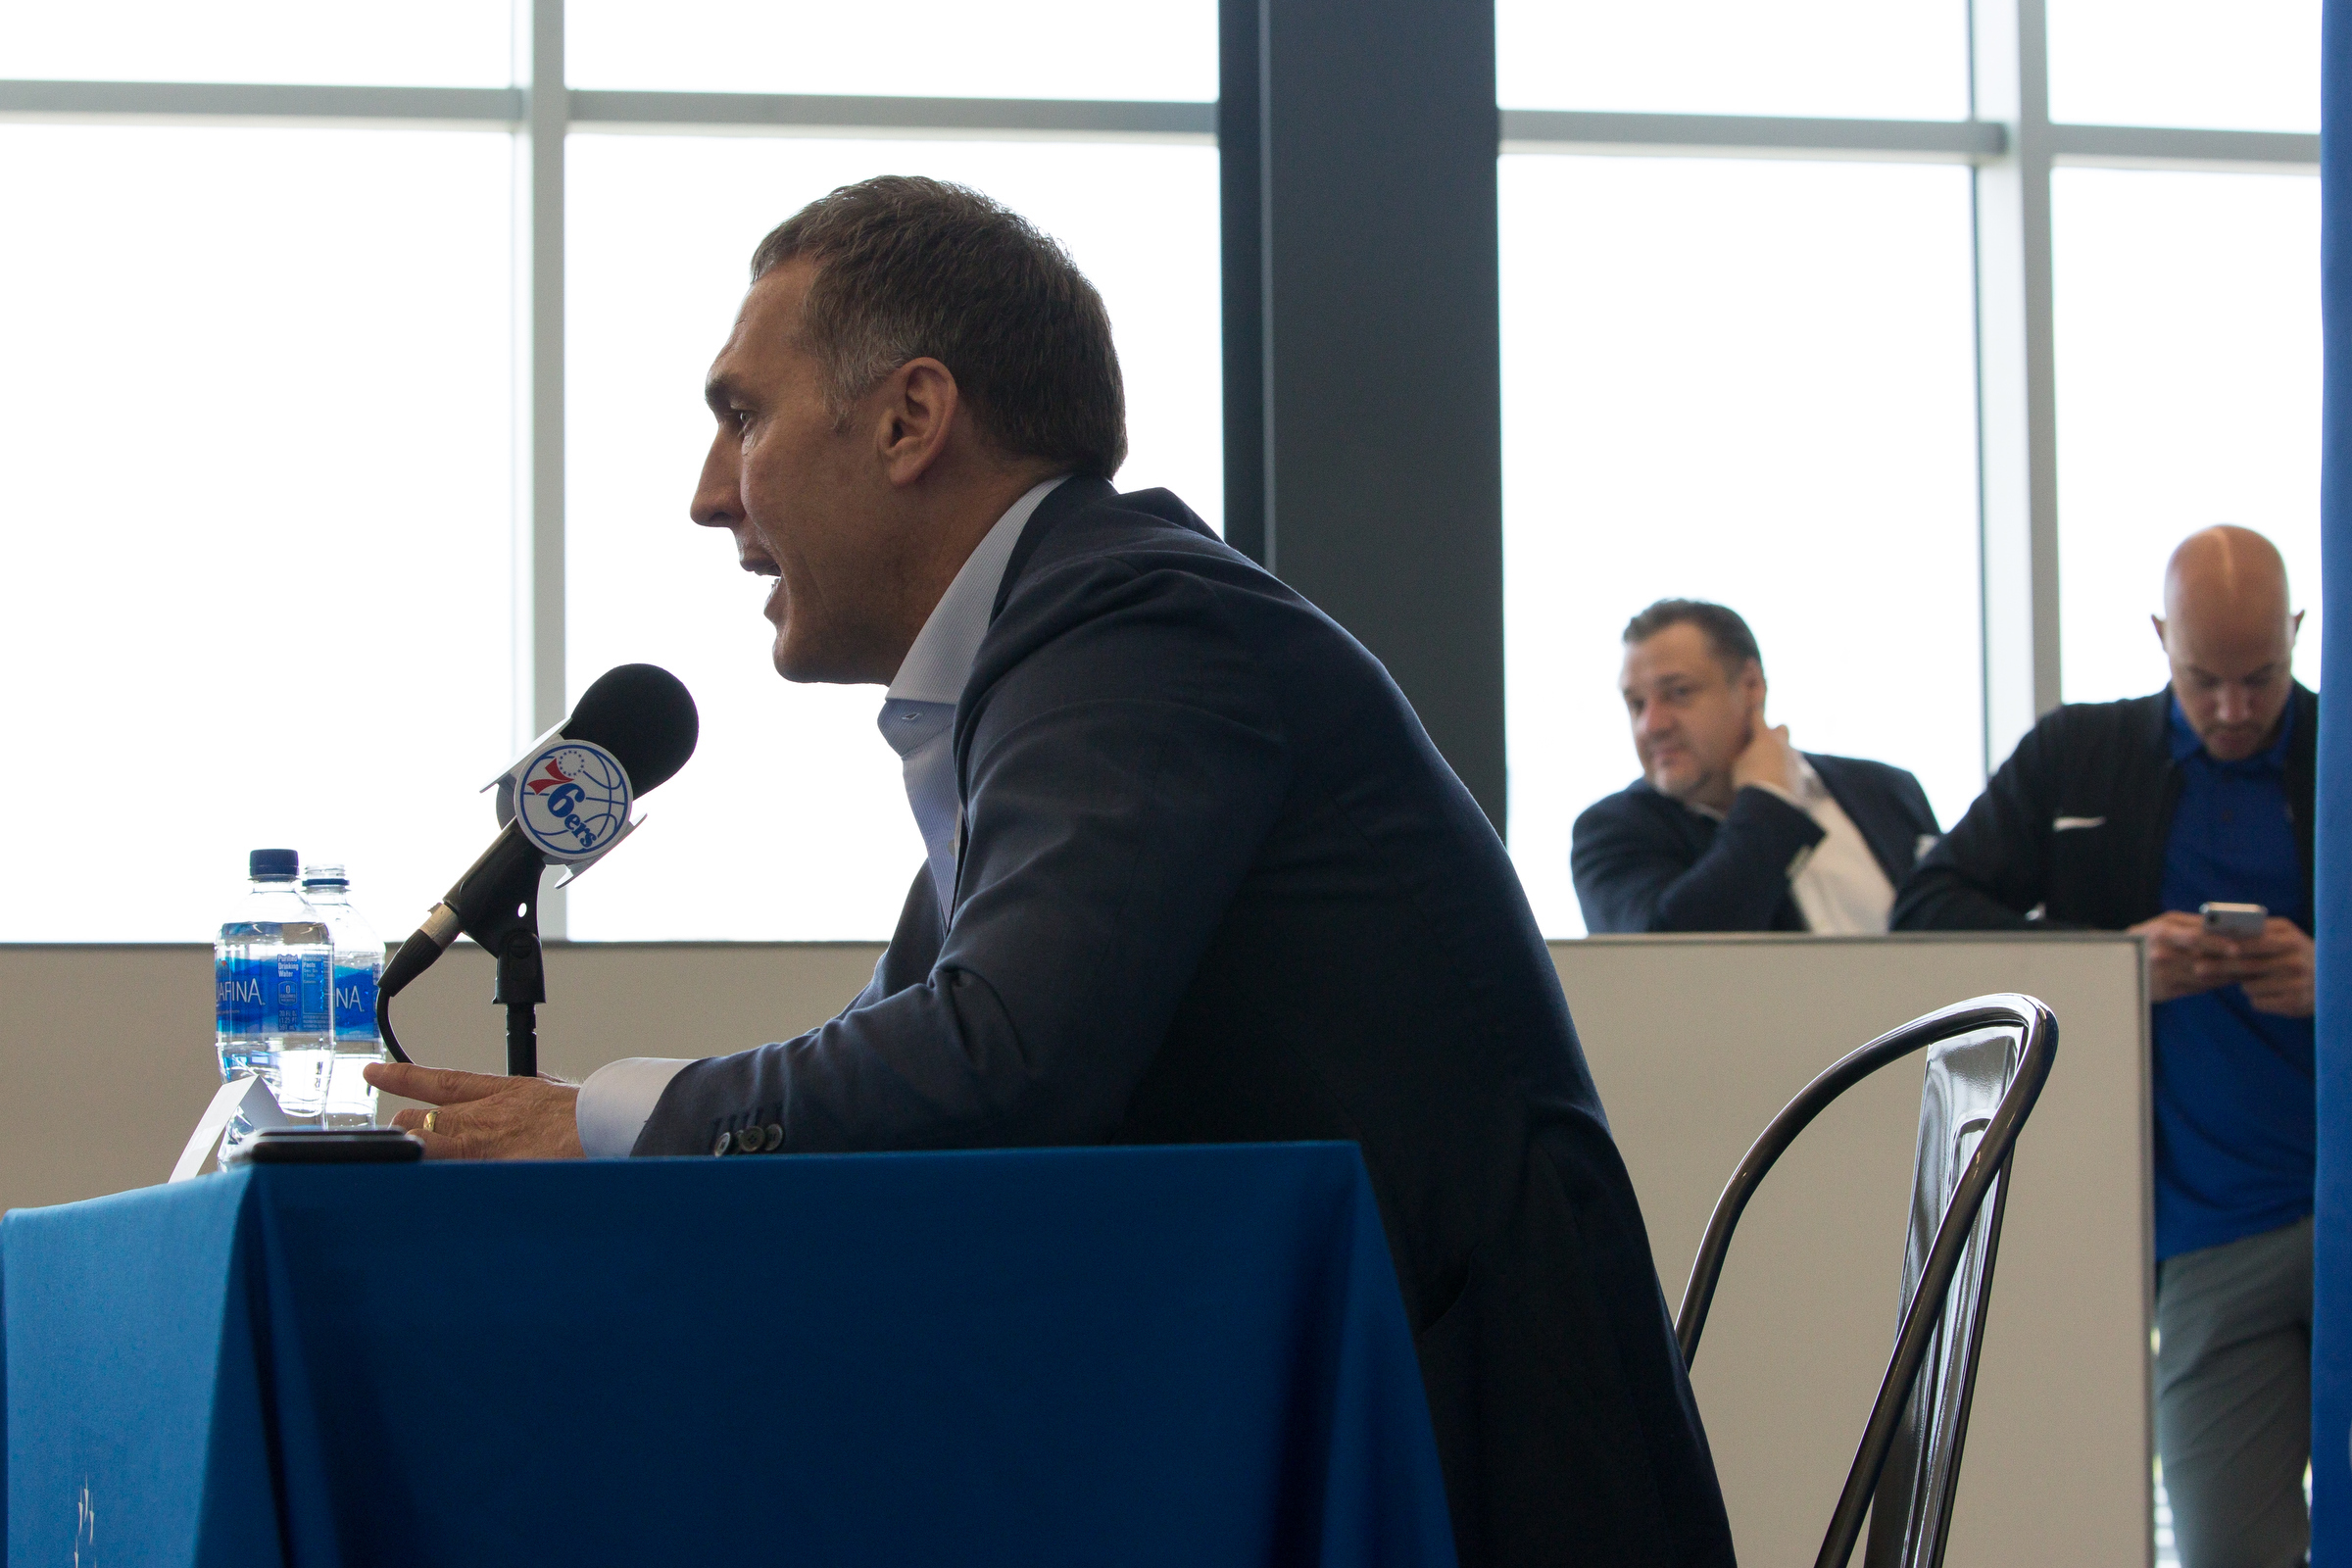 Sixers´ GM Brian Colangelo speaks with the media during a press conference at the Sixers practice facility on Friday.